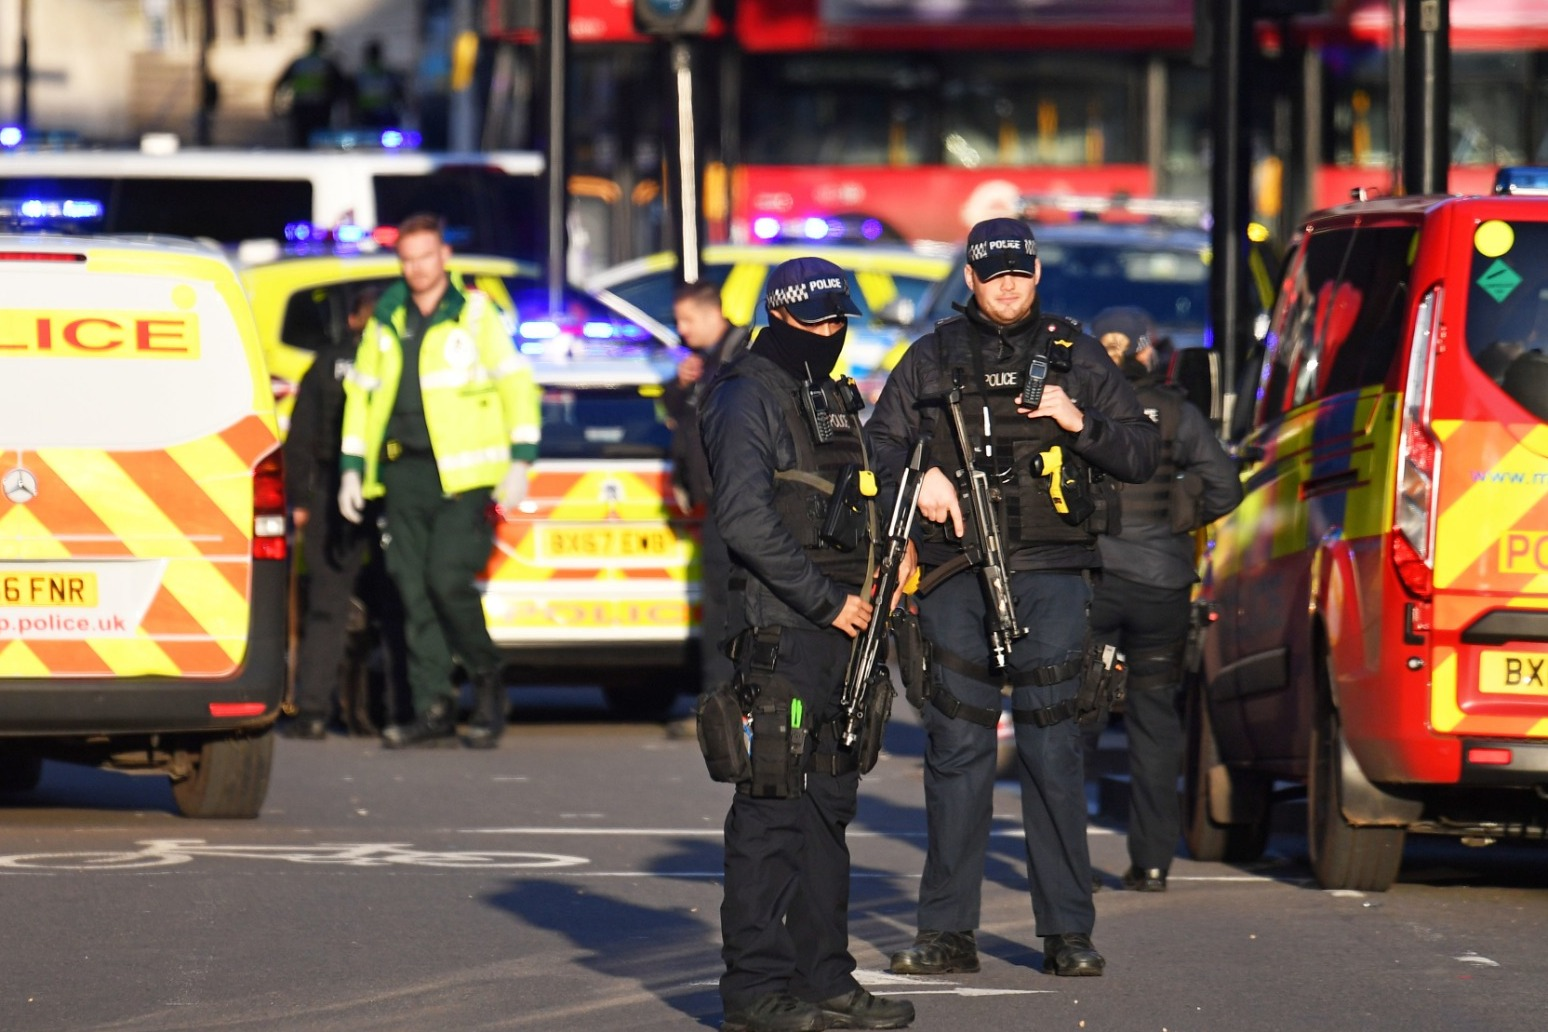 MAN HELD BY POLICE AND NUMBER OF PEOPLE INJURED FOLLOWING LONDON BRIDGE STABBING